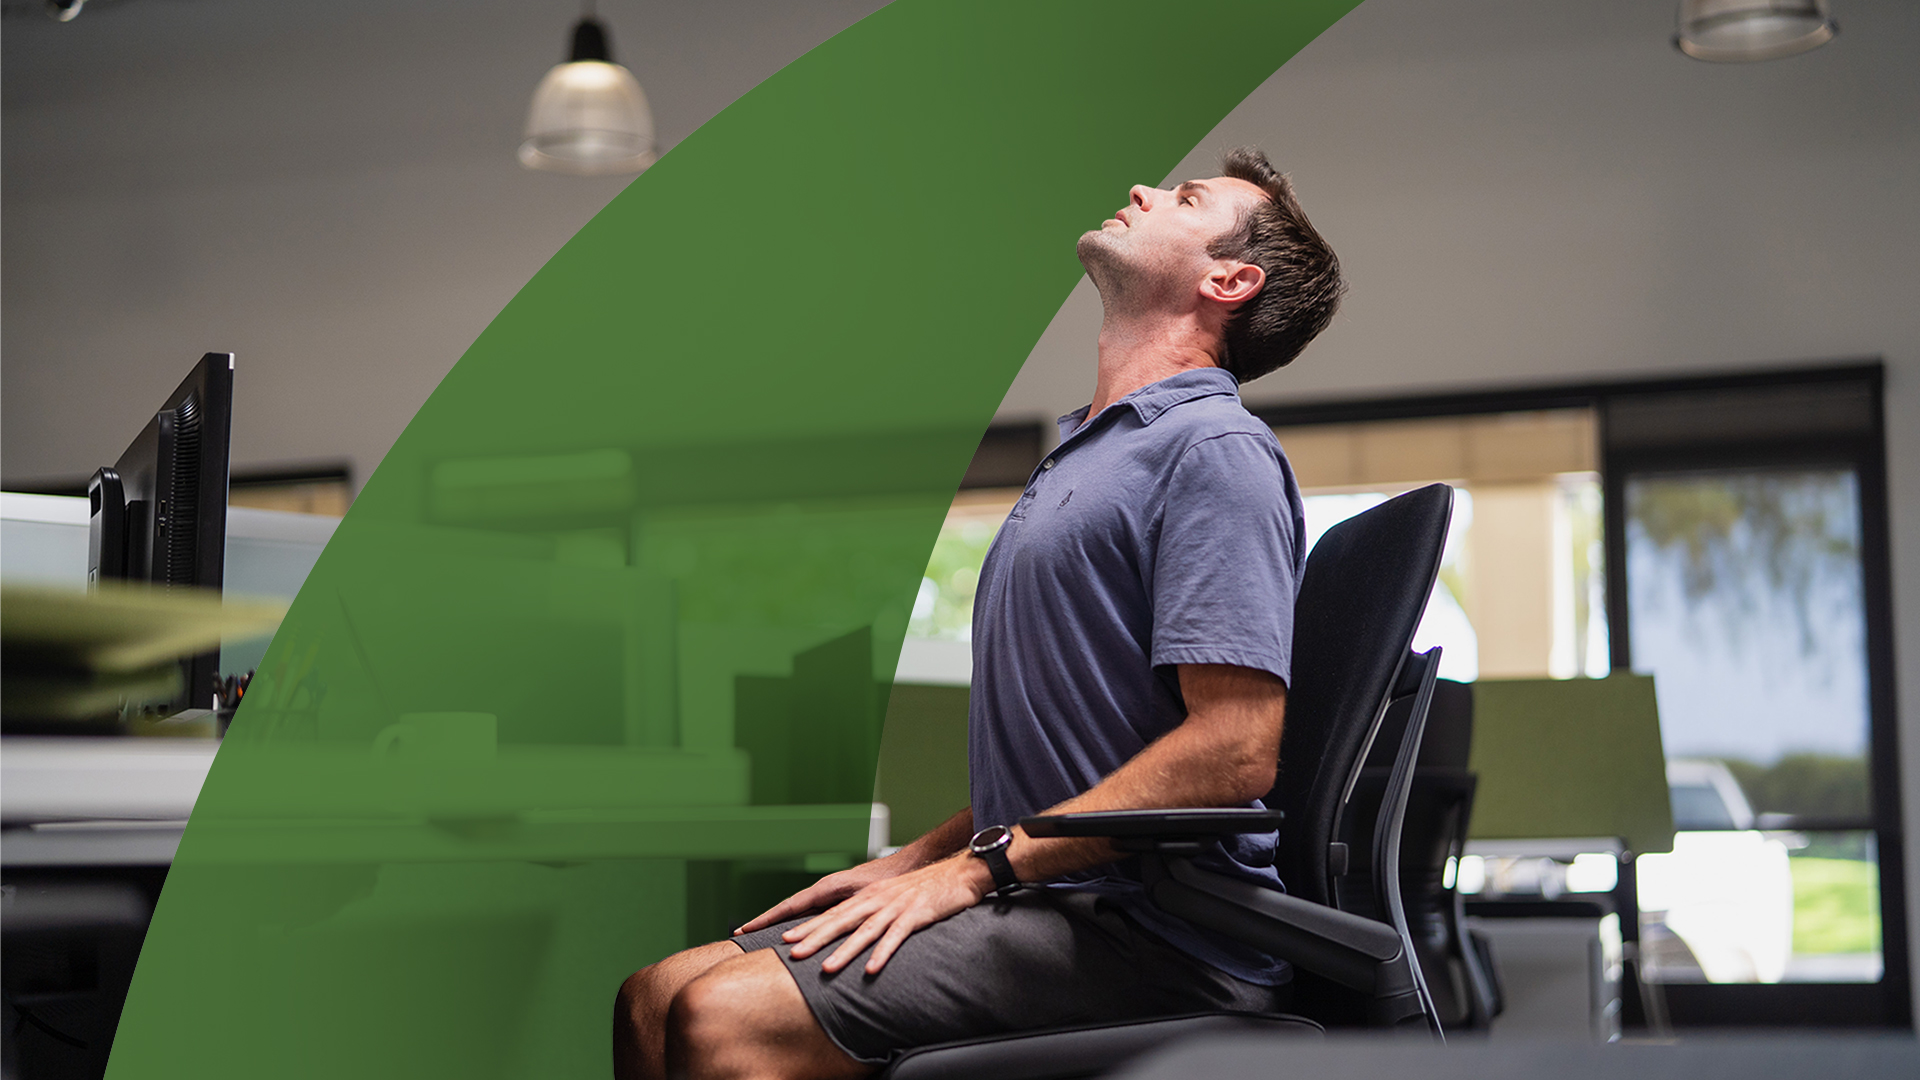 Introduction to the series: Computer and Text Neck Stretching Exercises